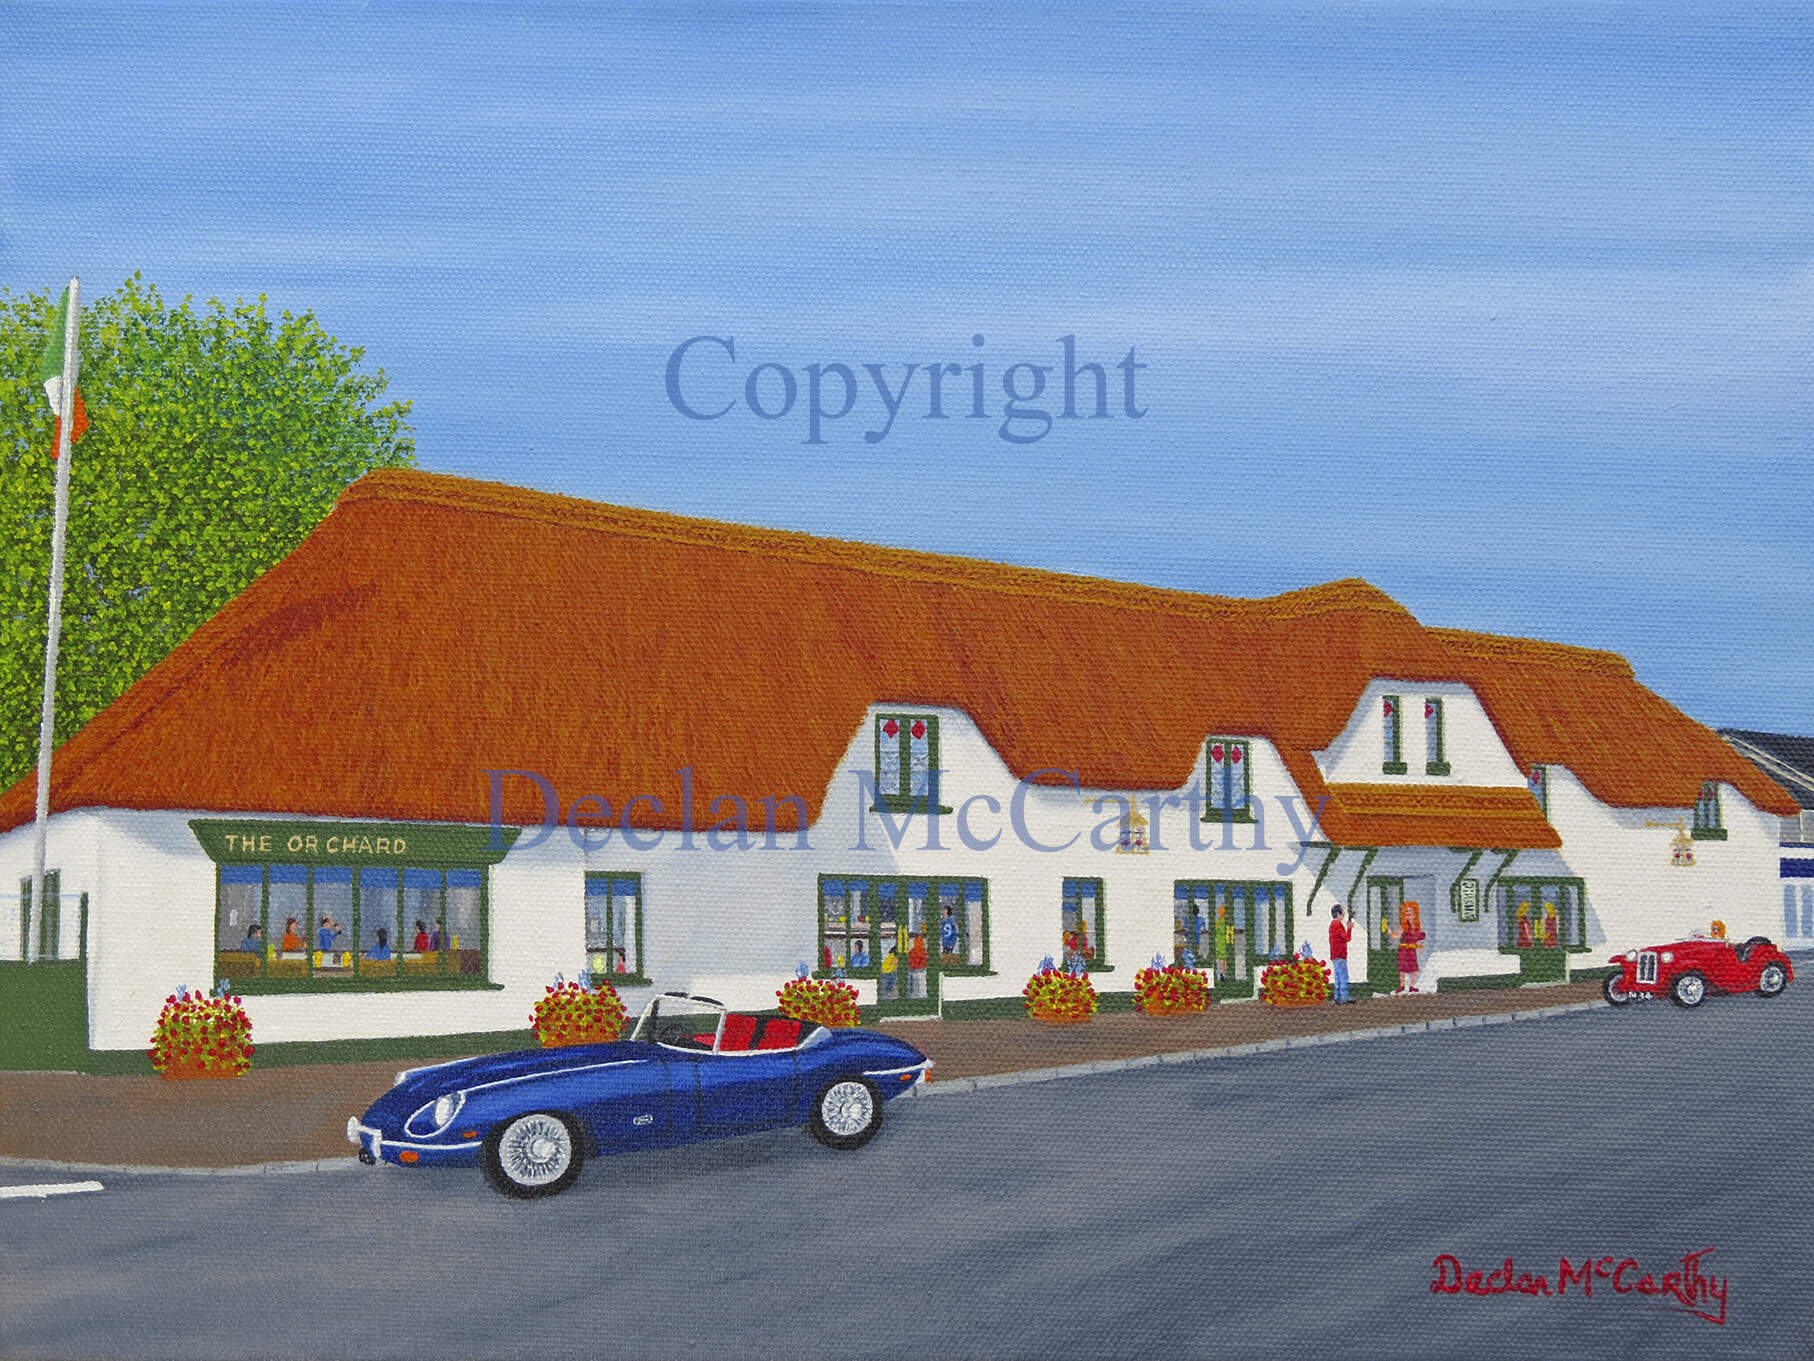 Thatched Pub in Stillorgan, Dublin.Oils On Canvas.16x12inch.Hanging Soon In The Stillorgan Orchard